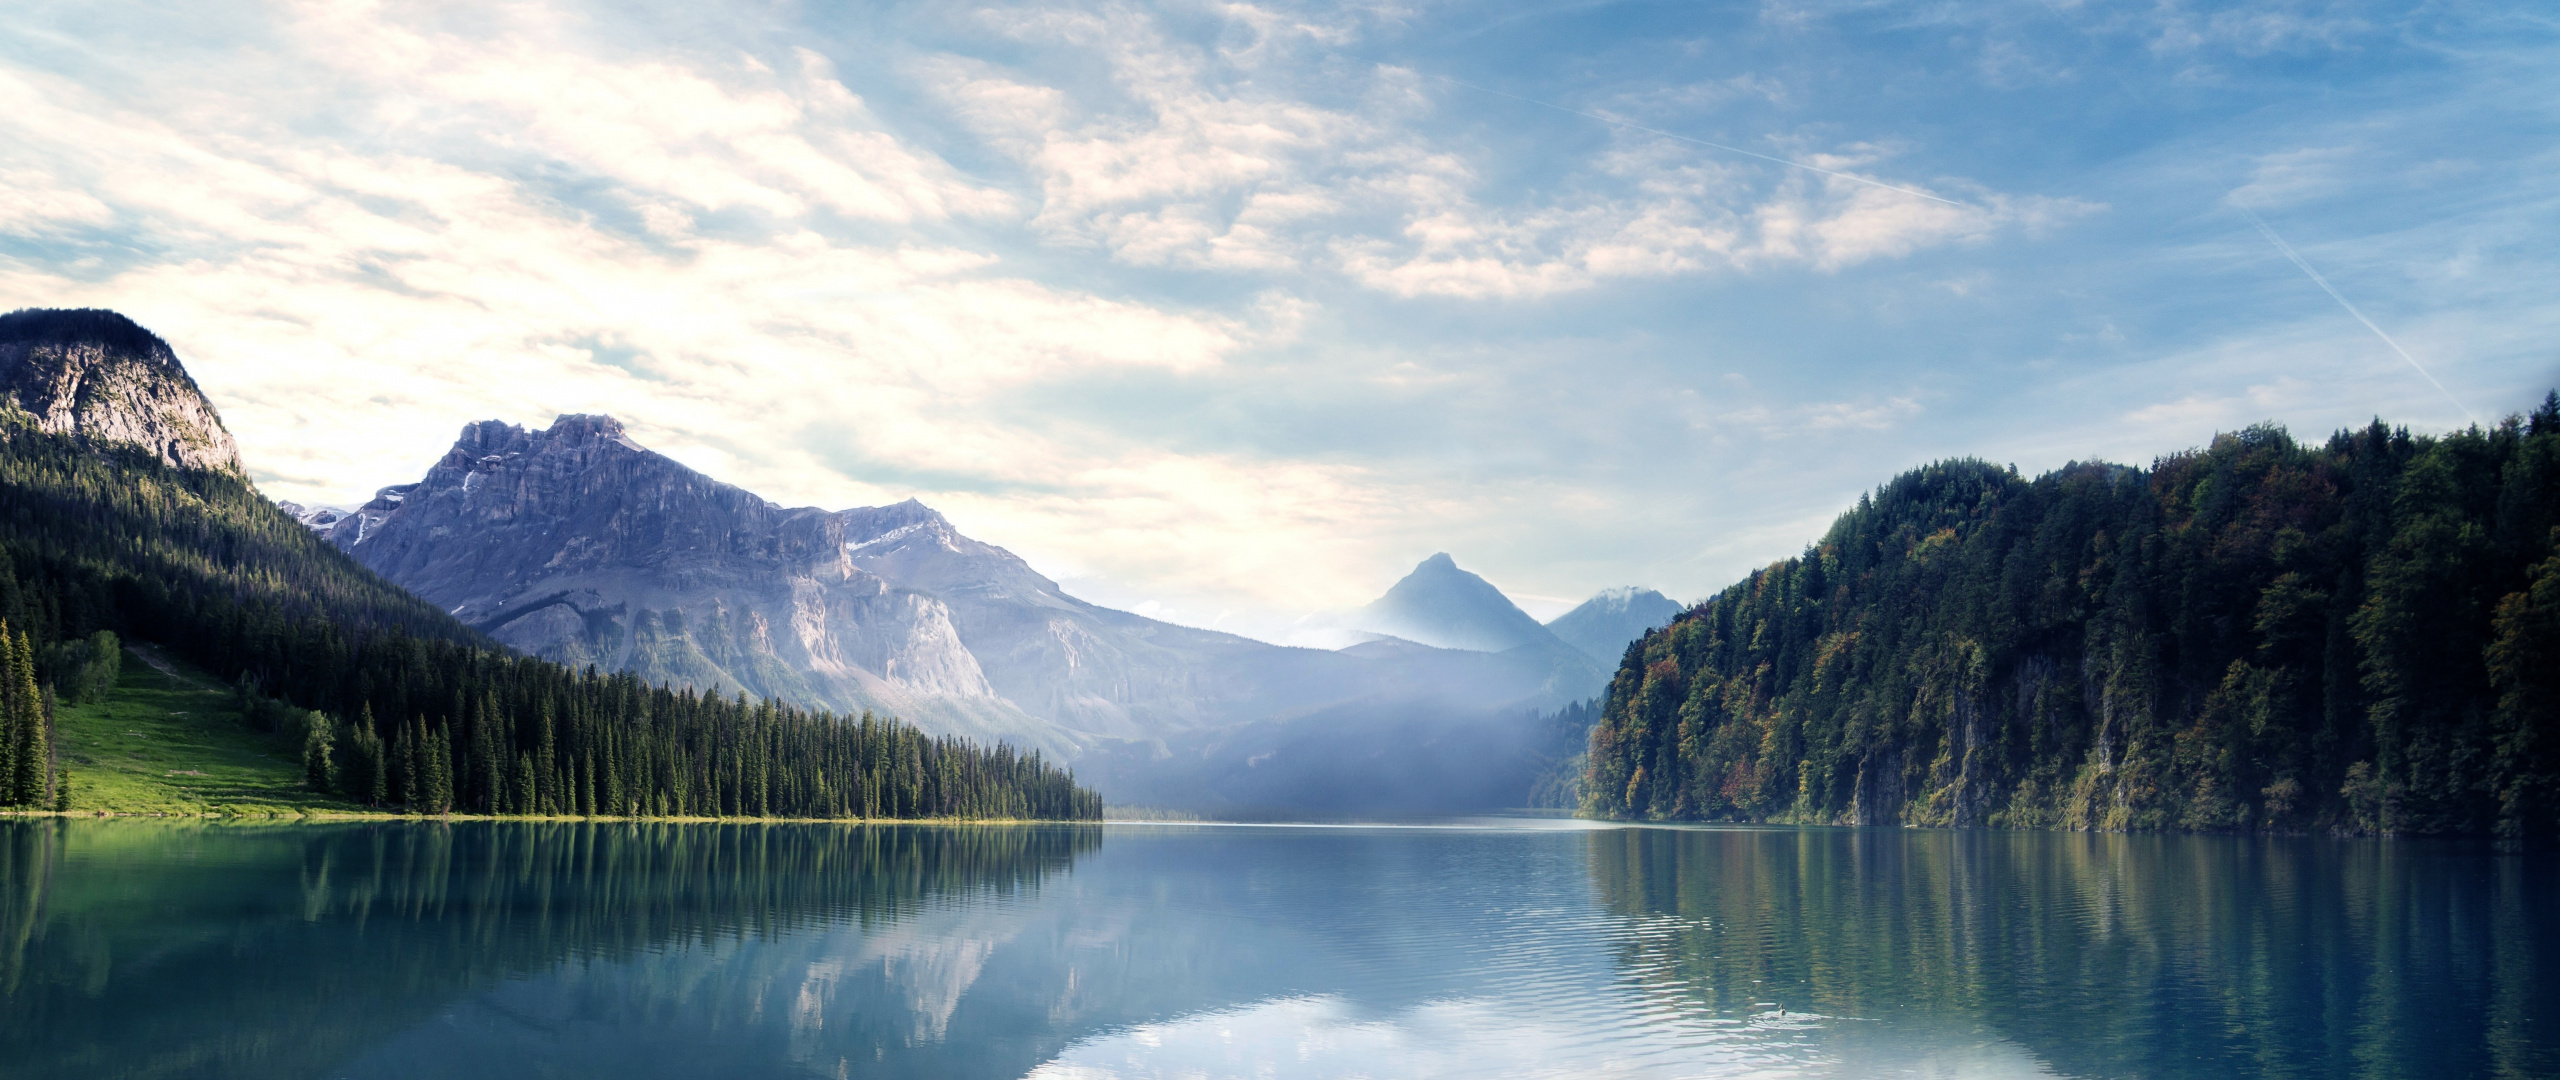 Lake, Nature, Mountains, Forest, Sky, Trees, Wallpaper - Mountains And Forest Hd - HD Wallpaper